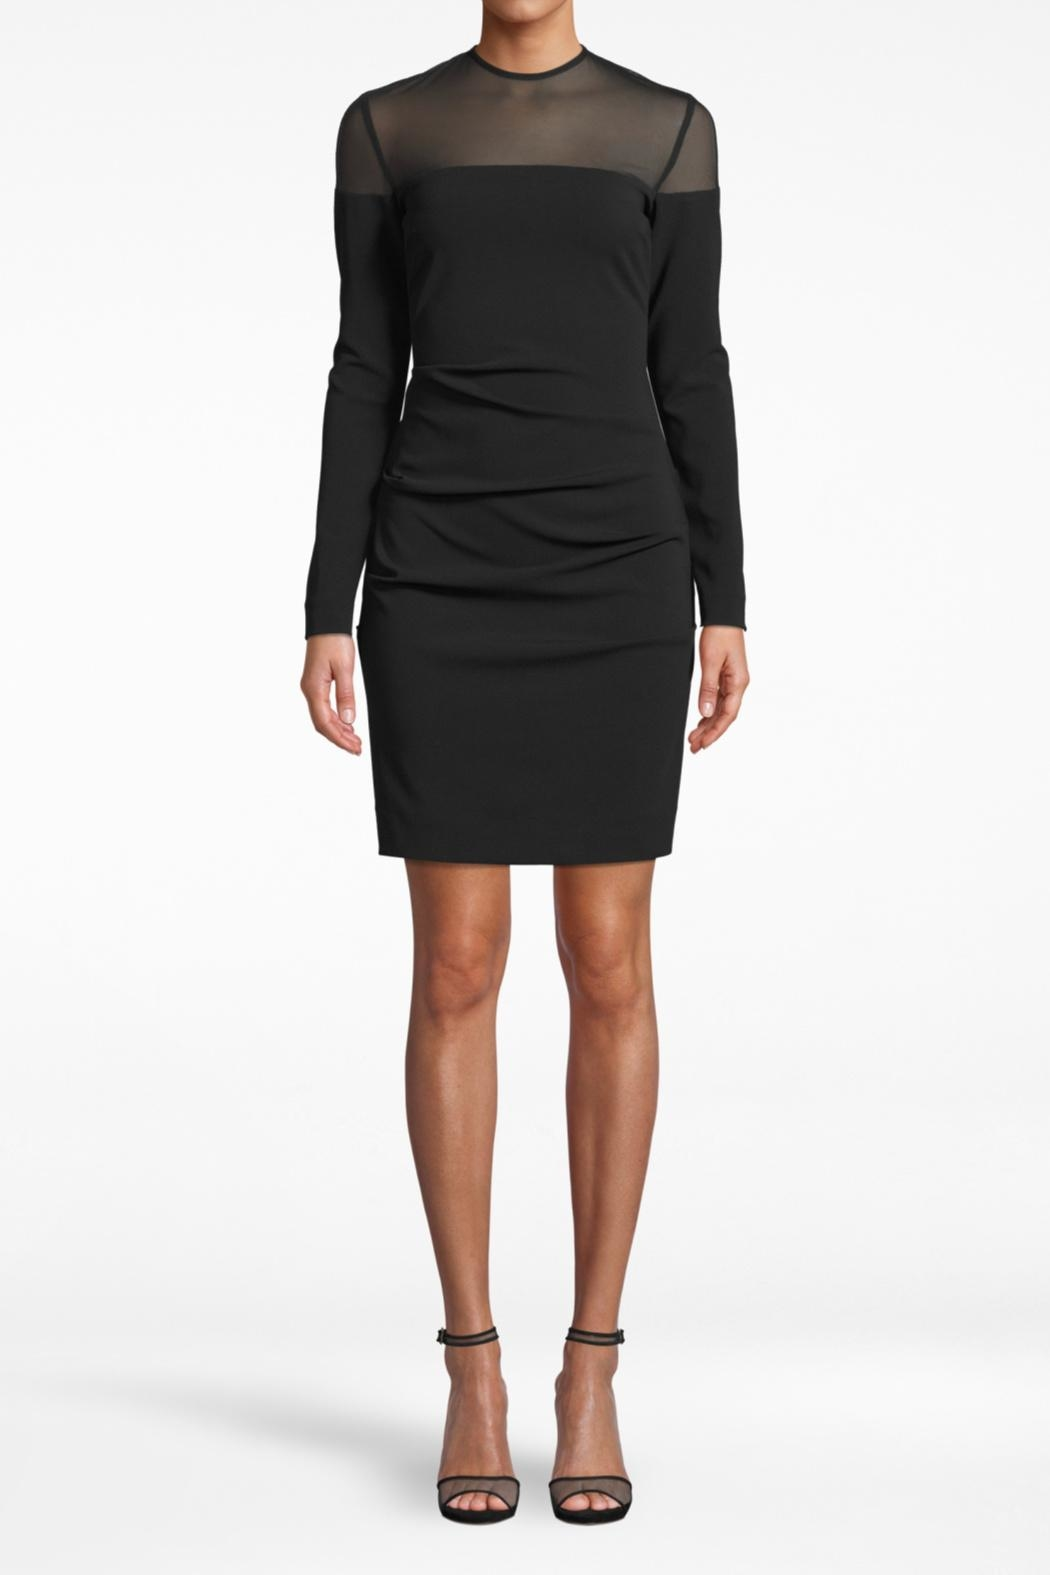 Nicole Miller Combo Long-Sleeve Dress - Front Cropped Image